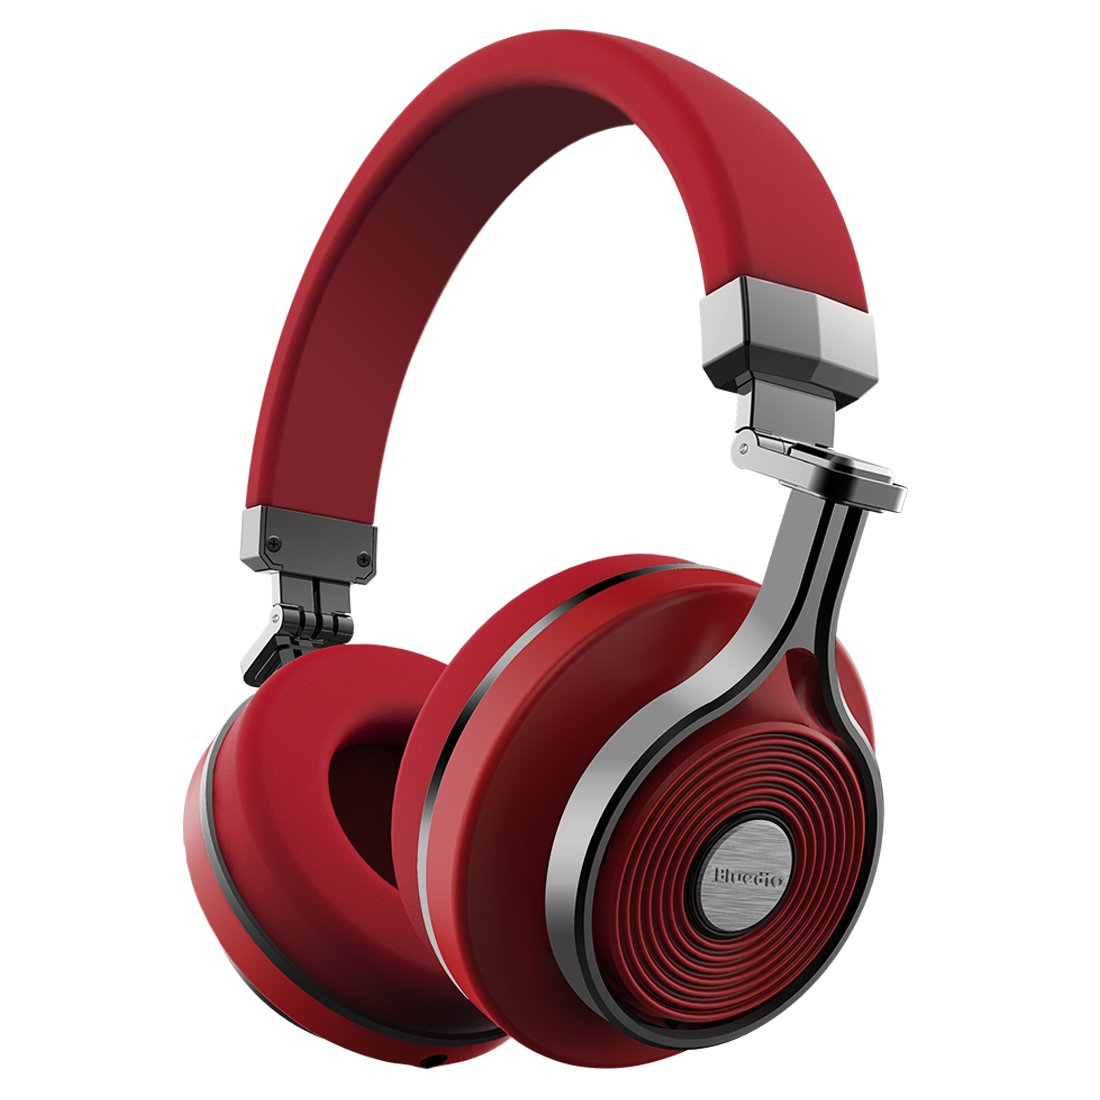 Bluedio T3 Turbine 4.1 Stereo Headphones